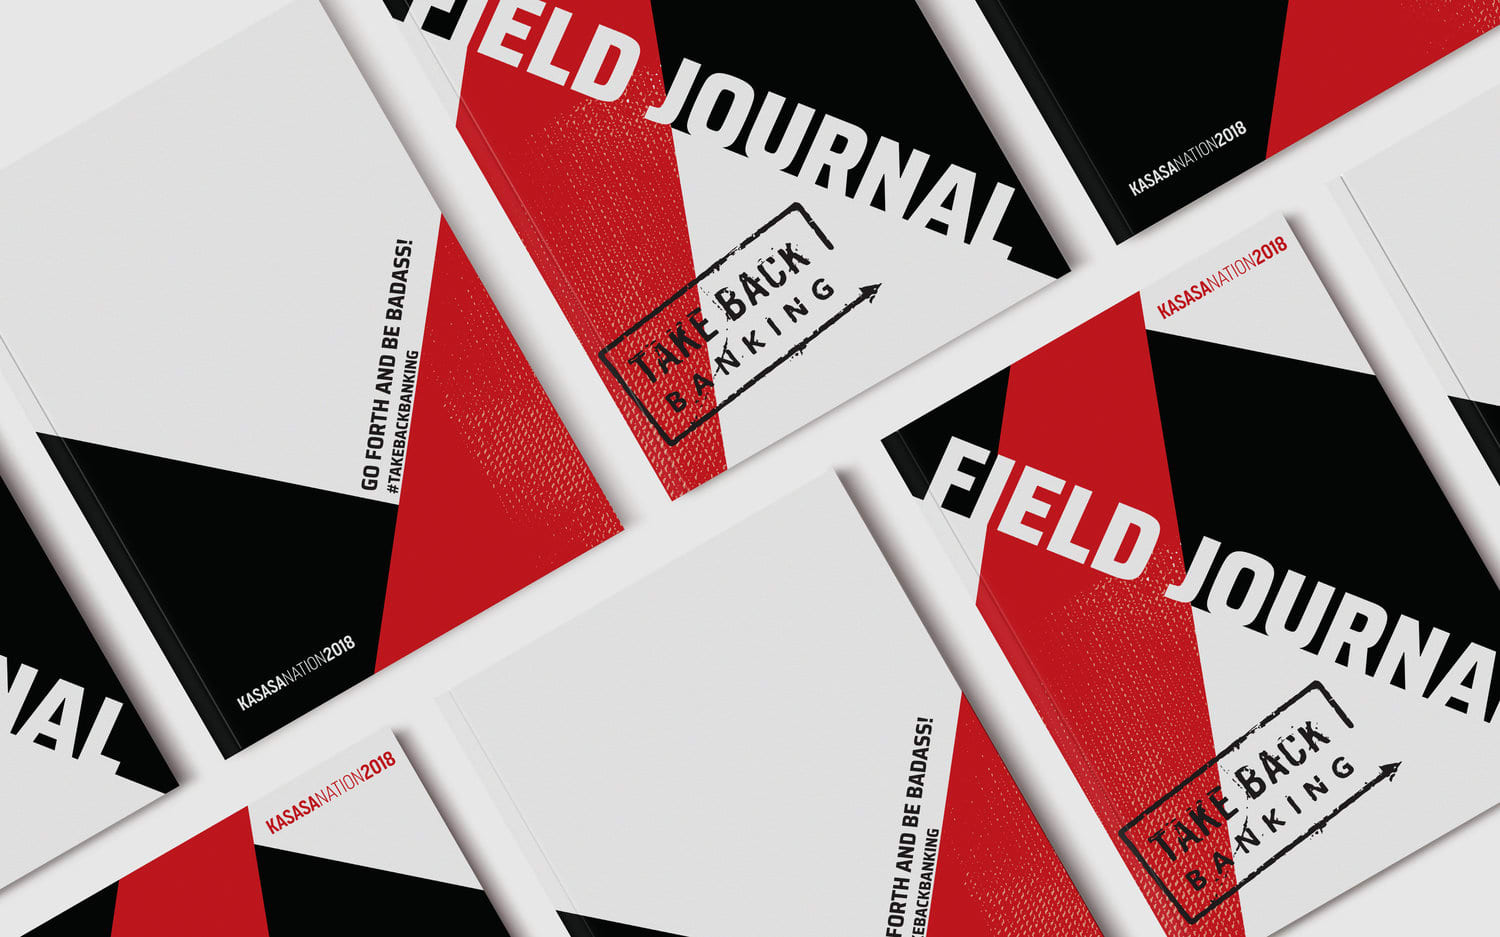 Kasasa Nation 2018 Award Winning Field Journal